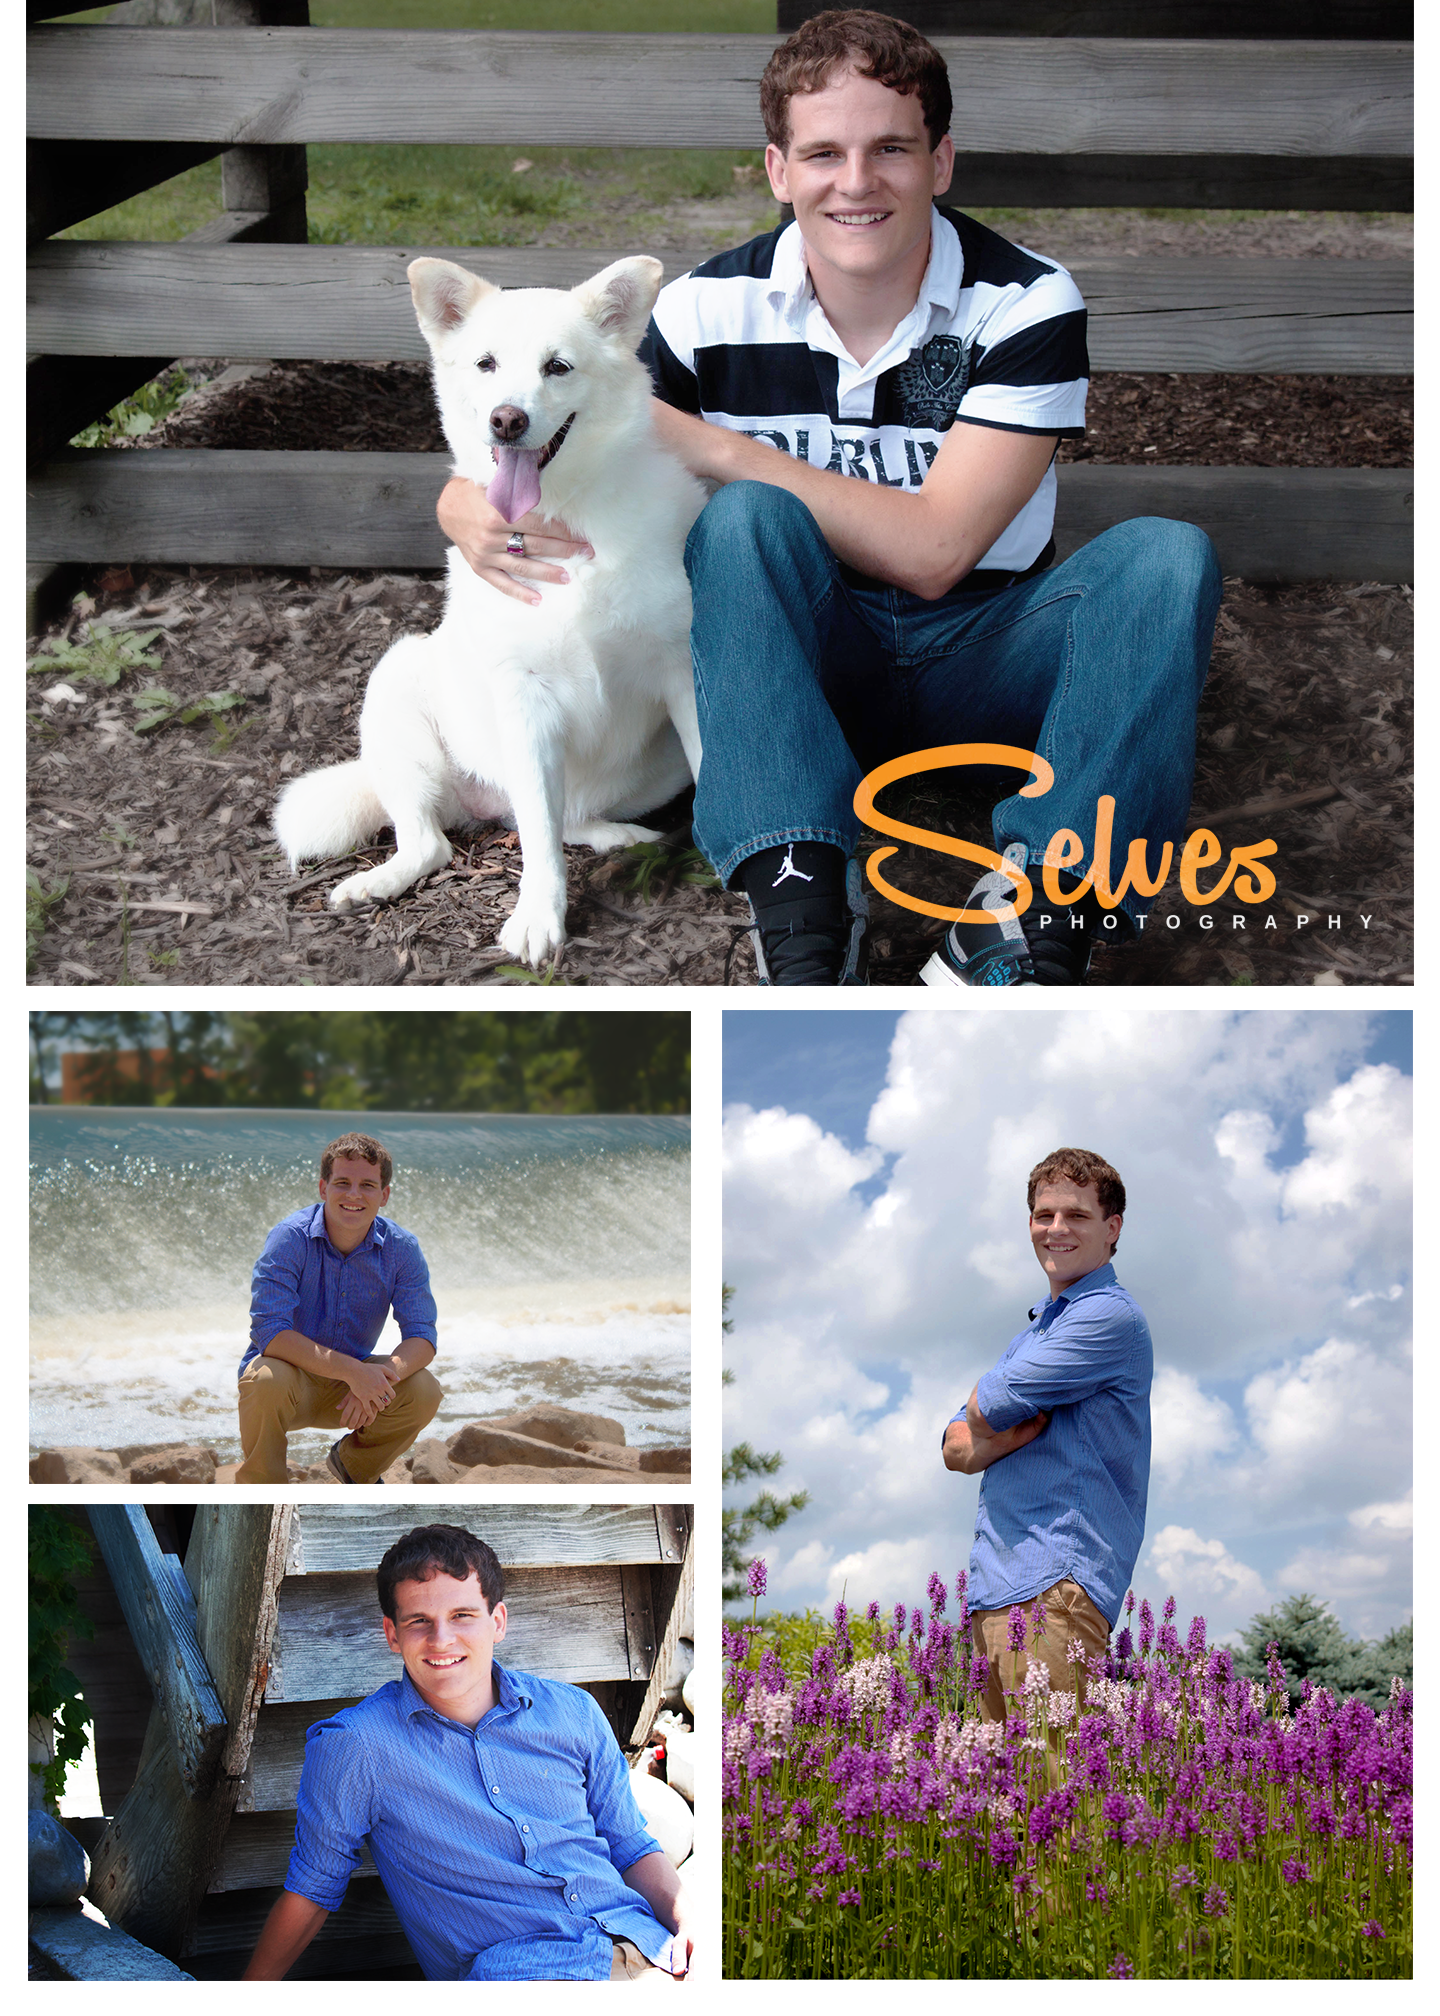 #senior pictures #outdoor with Selves Photography  www.selvesphotography.com